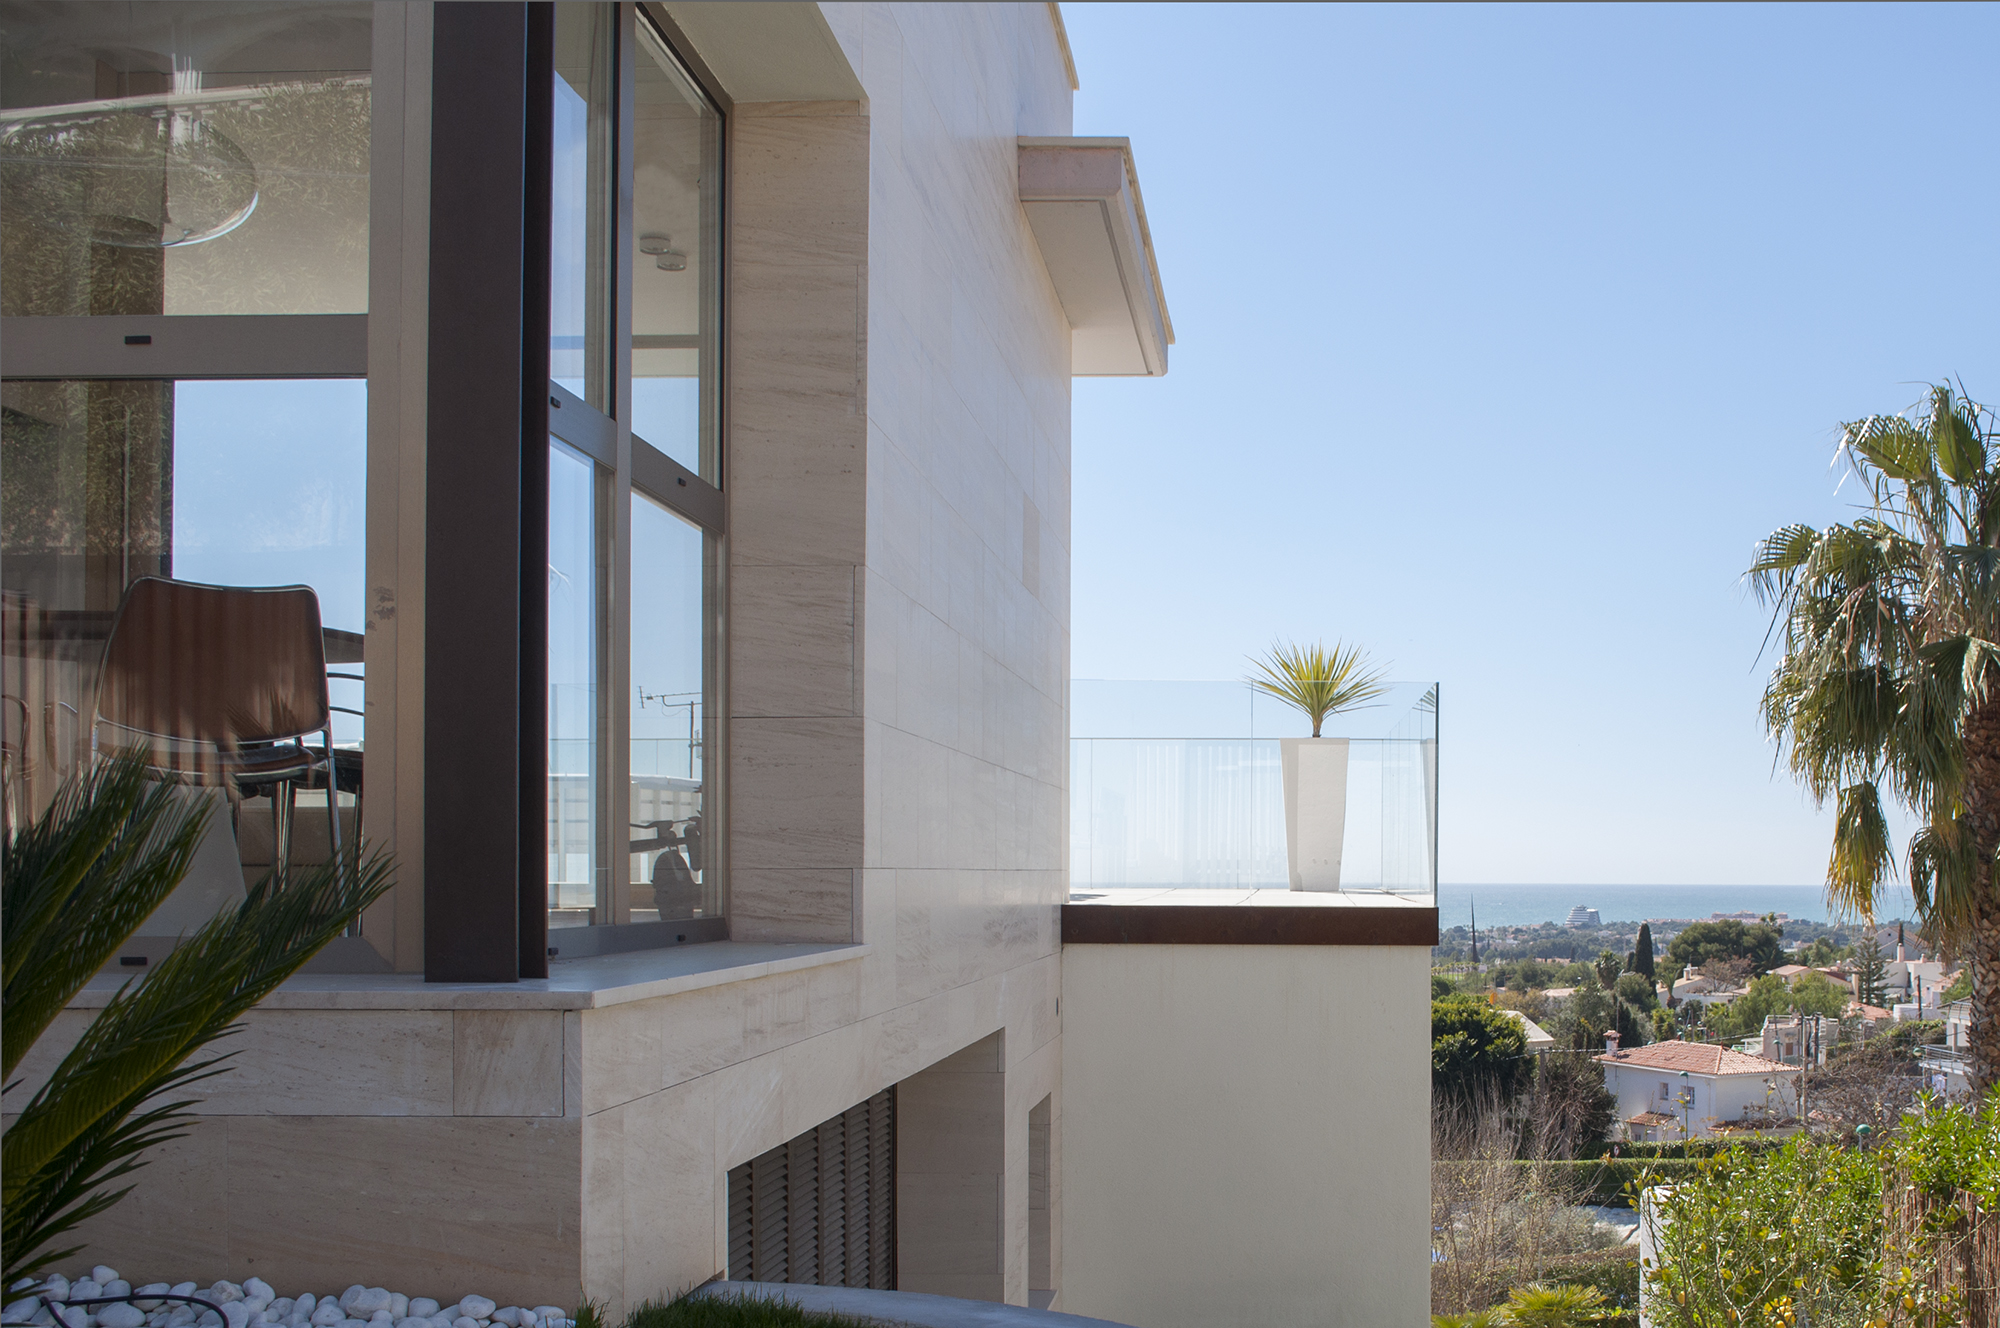 9-rardo-architects-houses-sitges-corner-window-sea-view-terrace